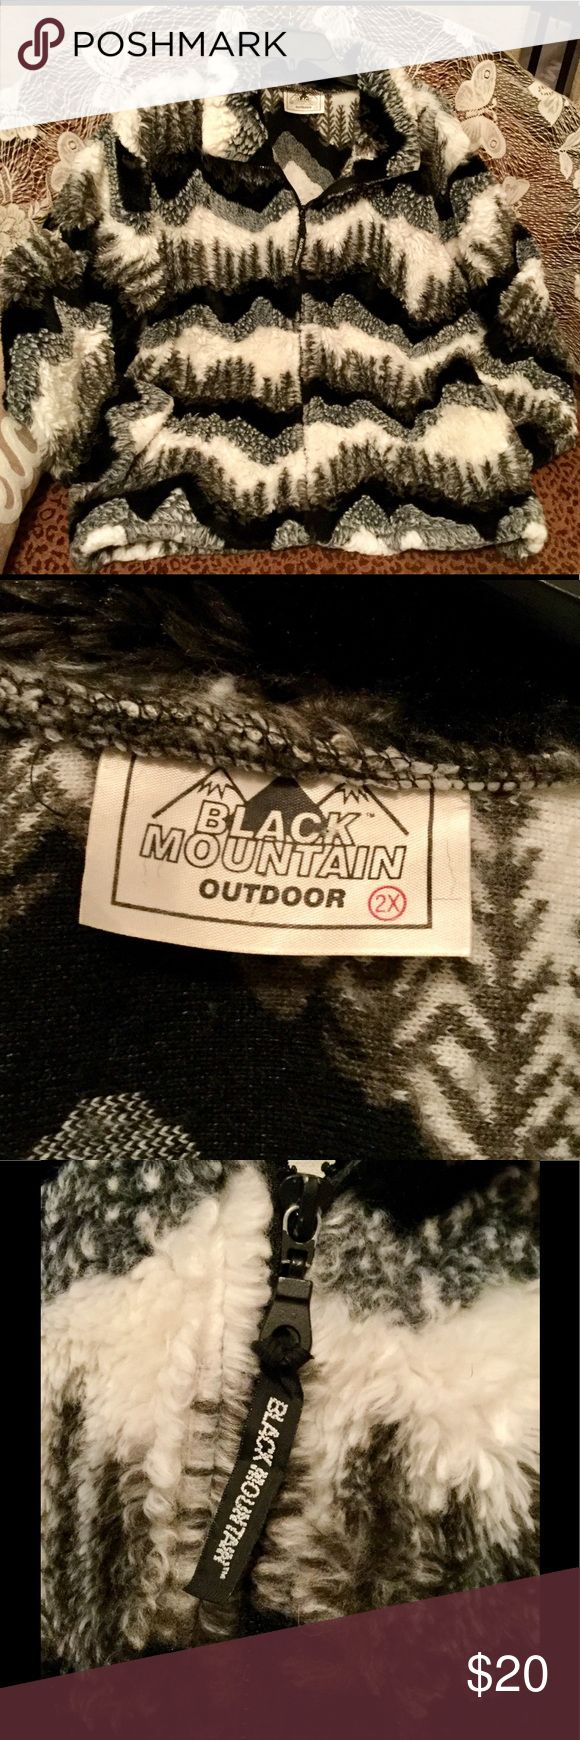 Women's Plus Size Jacket! Black Mountain outdoor super cute black and white soft, cozy zip up jacket! Has two pockets, Excellent Condition! Size 2X Black Mountain Jackets & Coats